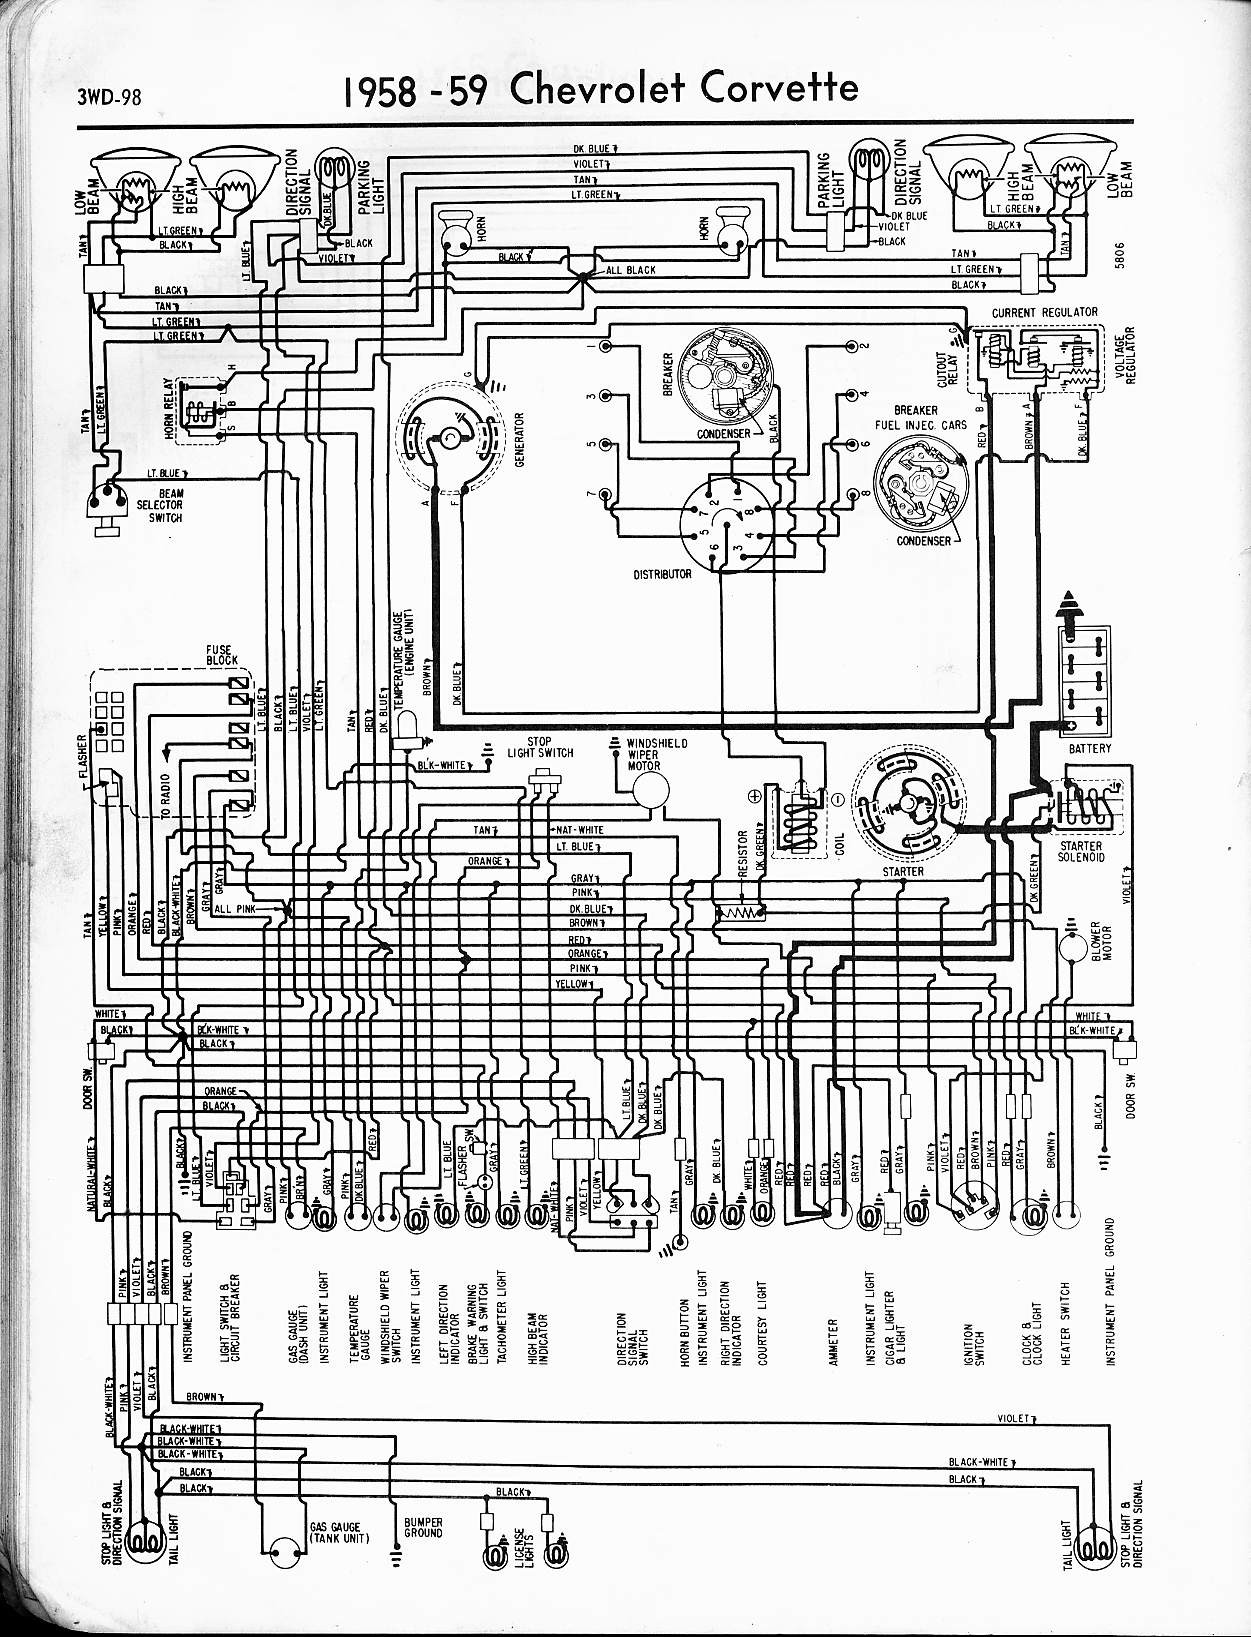 77 Sportster Wiring Diagram 1977 Chevy Truck Schematic Diagrams Harness 350 Engine